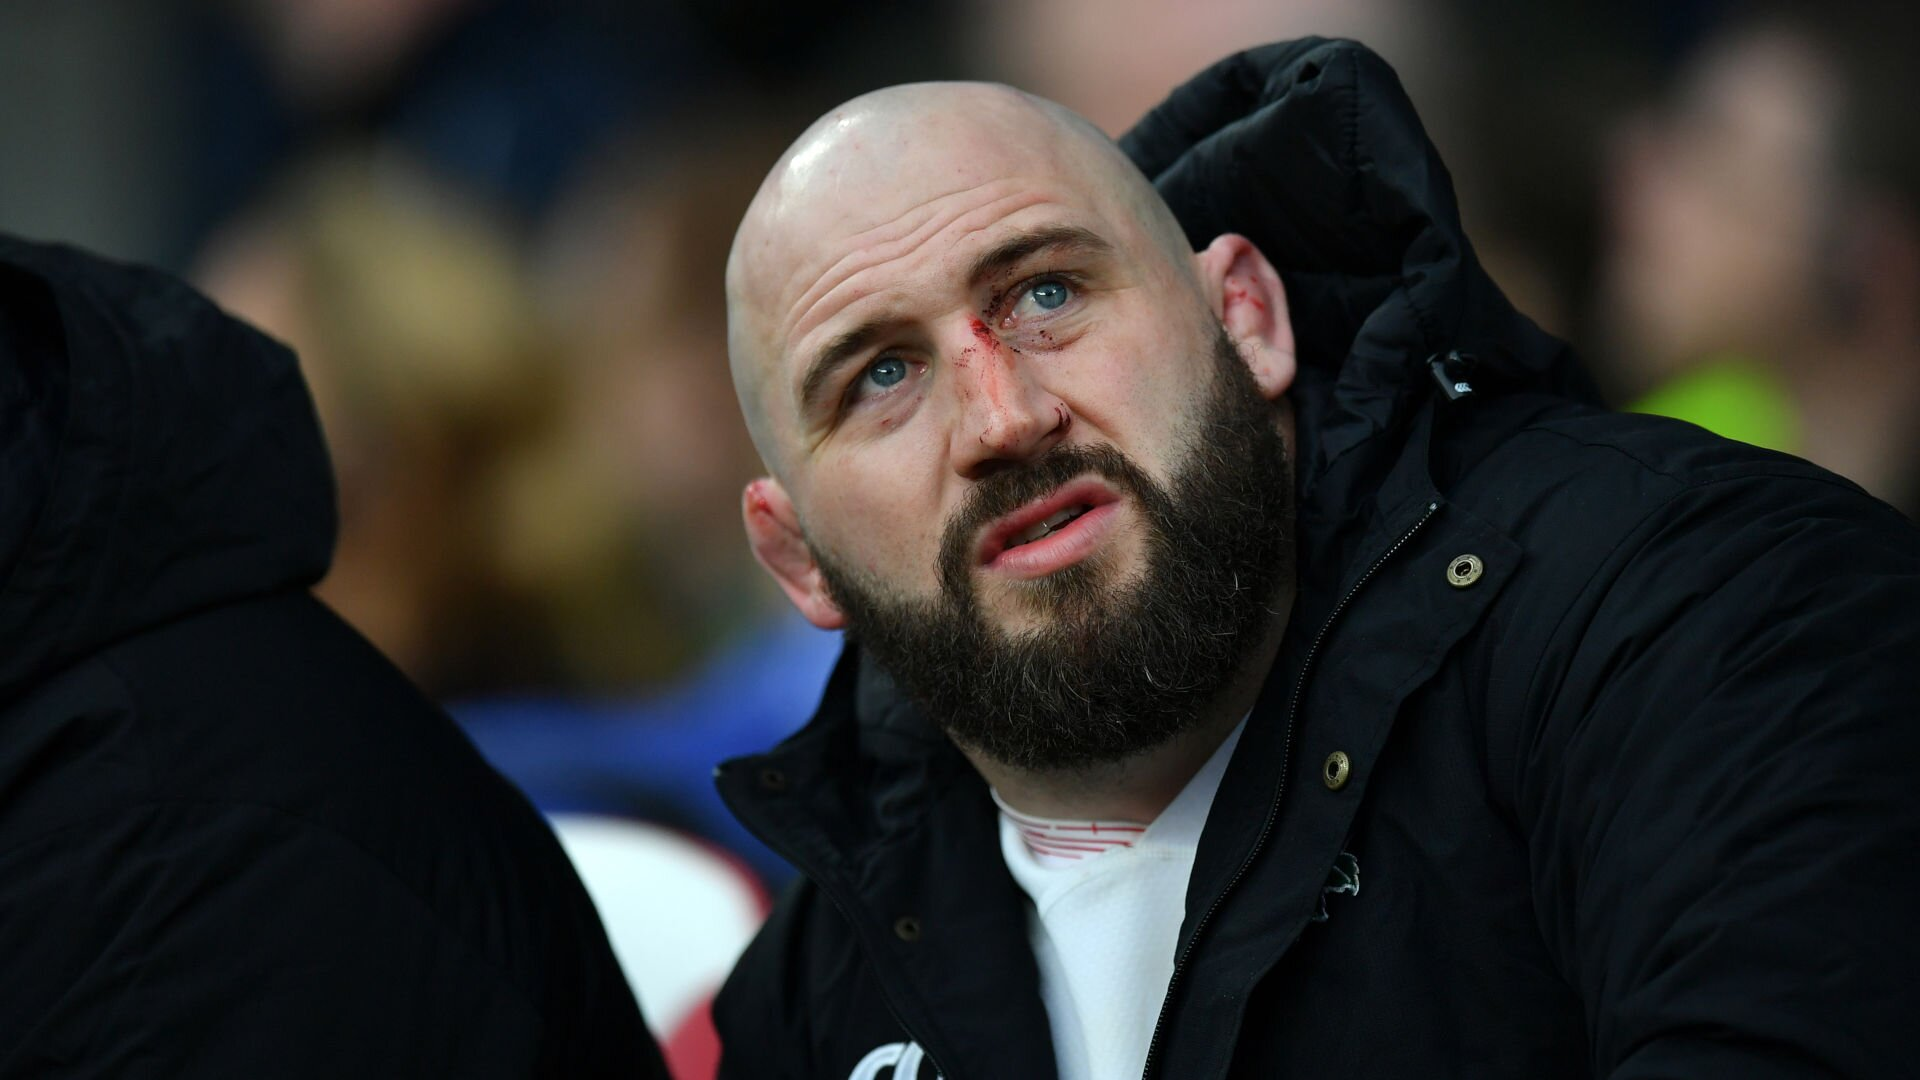 England prop Joe Marler set to complete suspension without missing a match